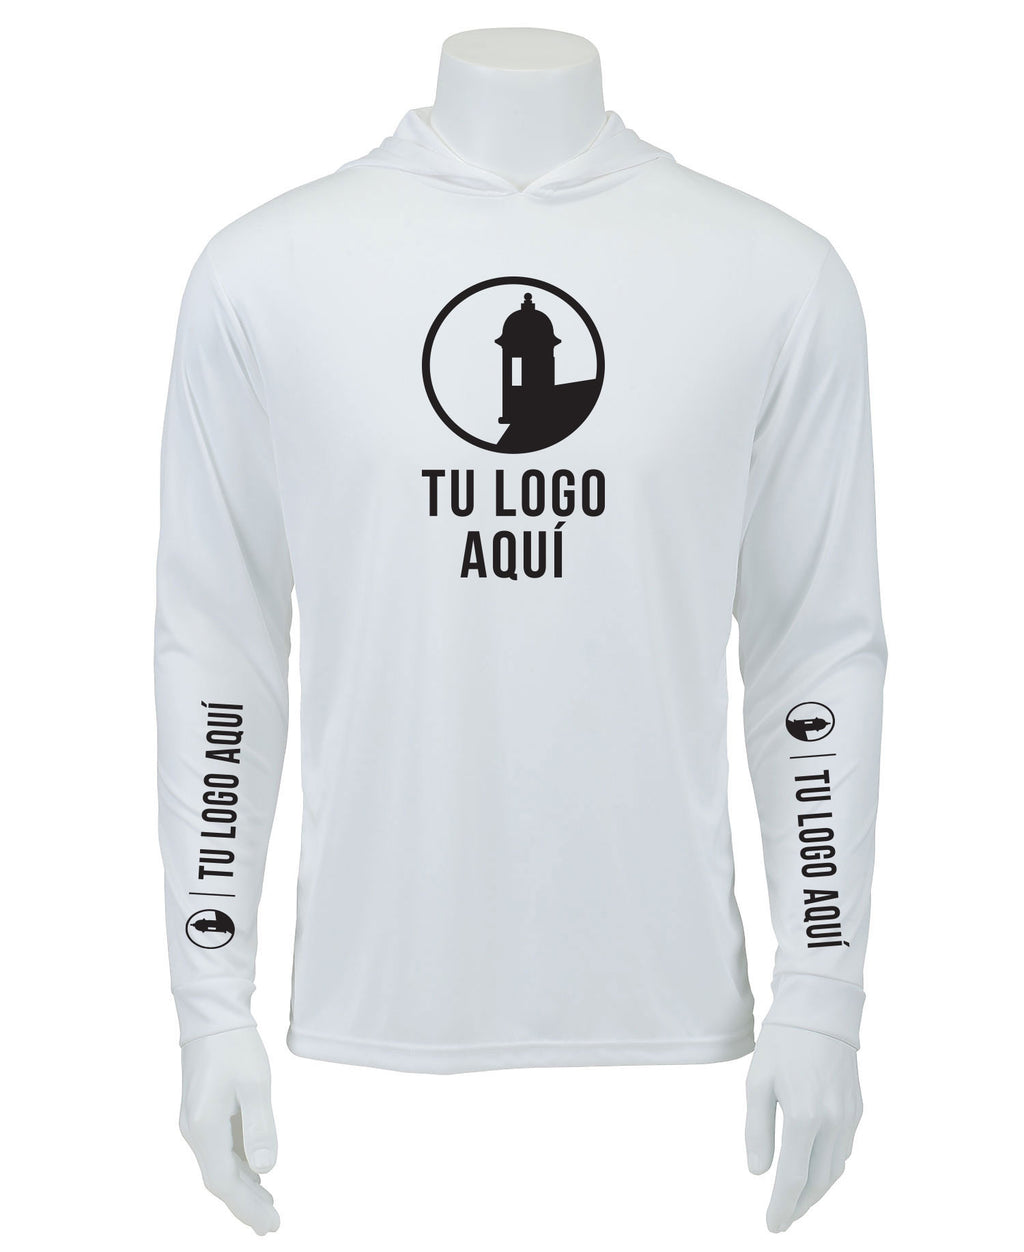 Unisex Long Sleeve DRI-FIT Hood PREMIUM